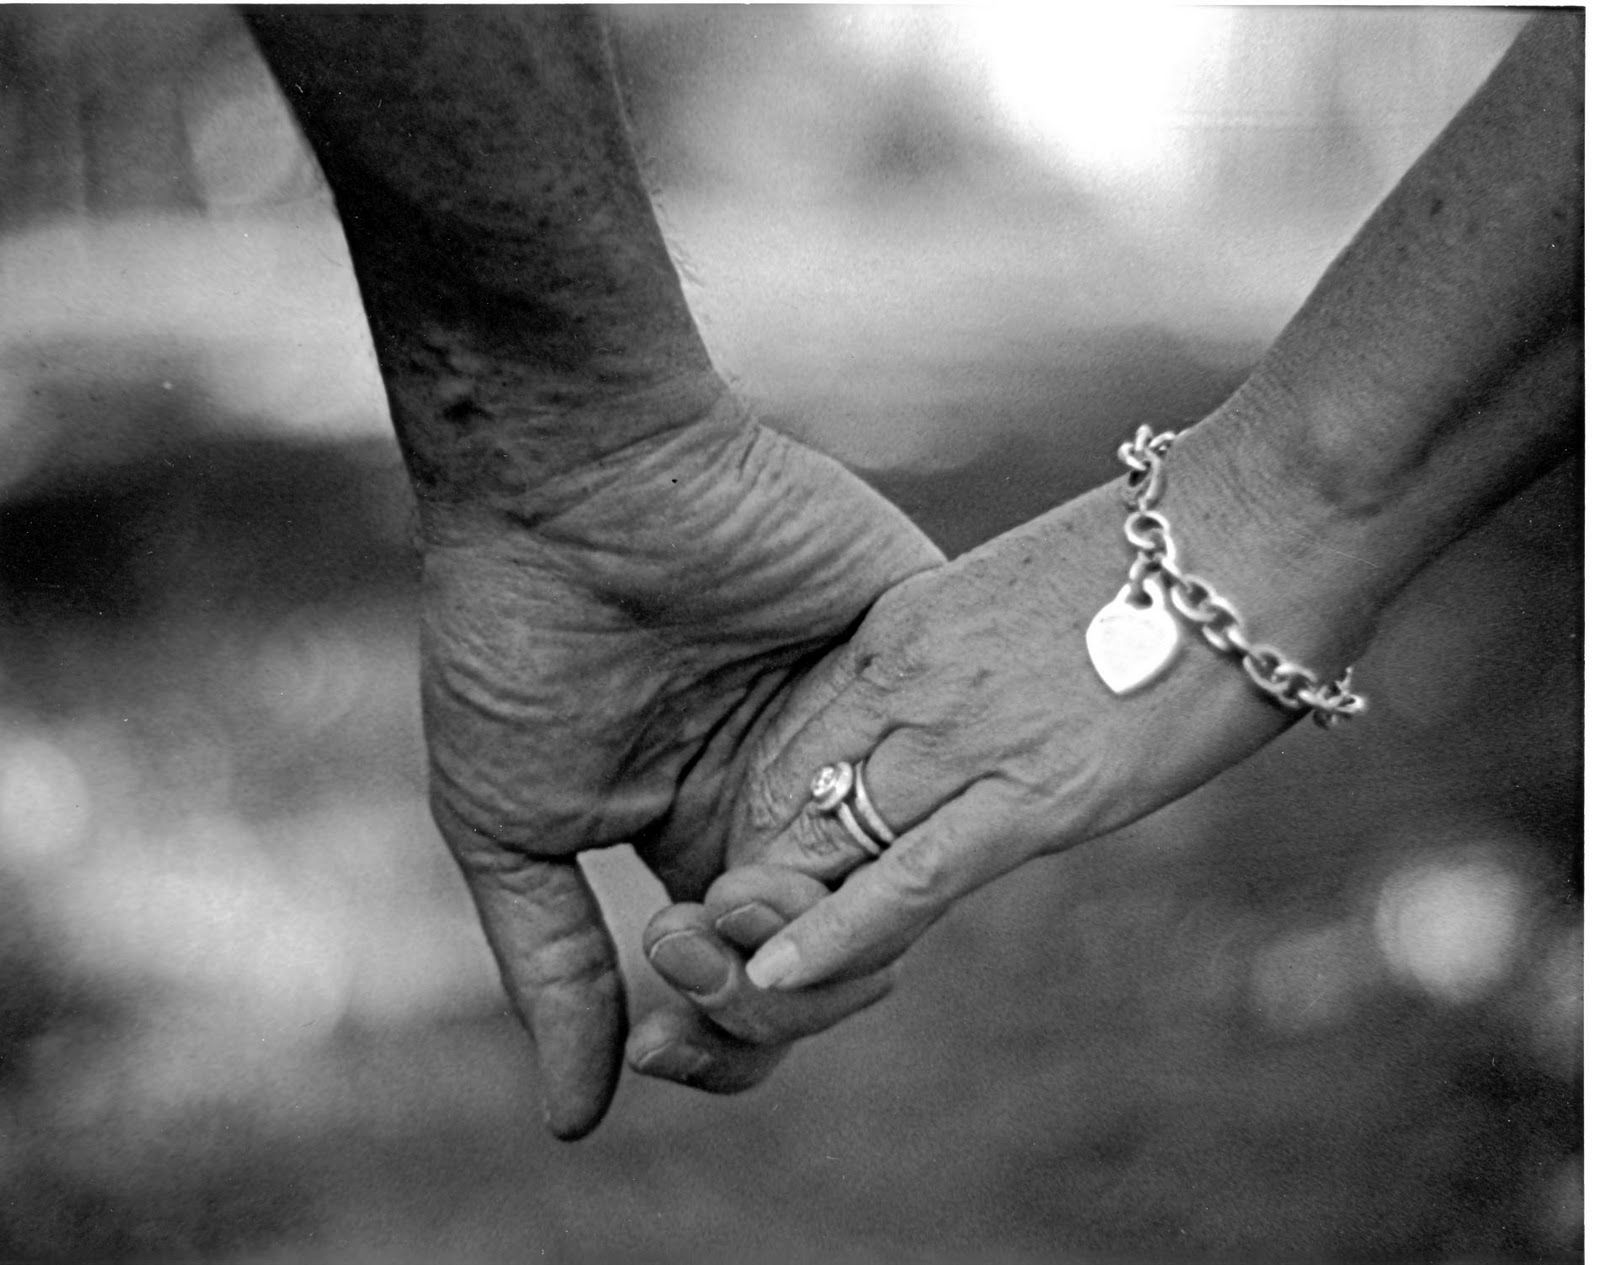 Holding-Hands1.jpg | Hand in Hand | Pinterest | Holding hands and ...